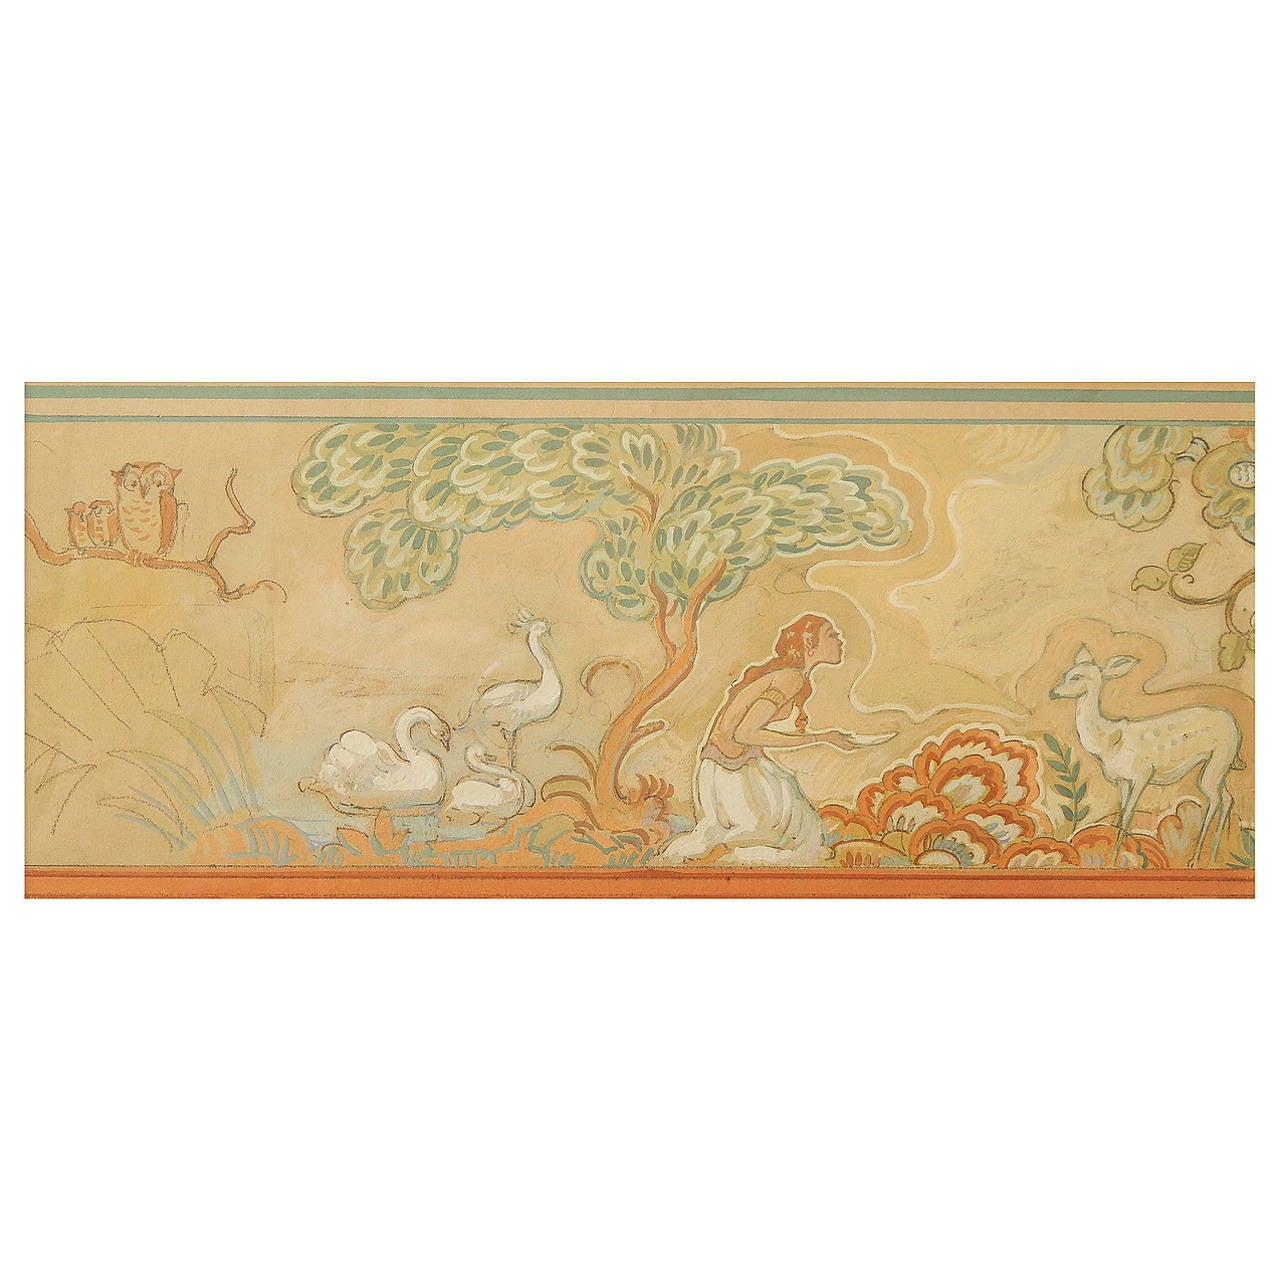 """""""Nymph and Fawn in Paradise,"""" Superb Art Deco Mural Study Painting by Petersen"""